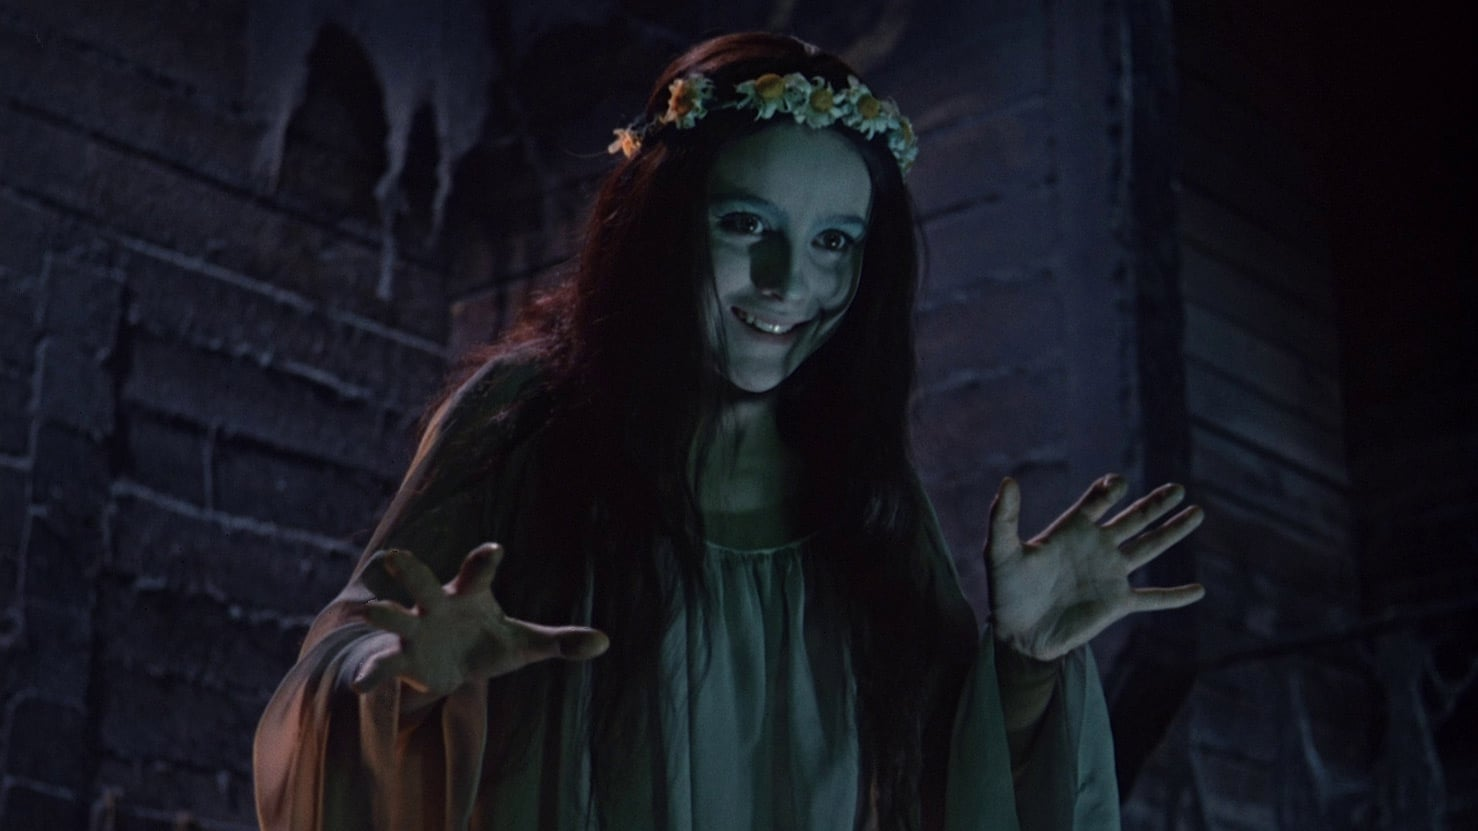 the witch in Viy